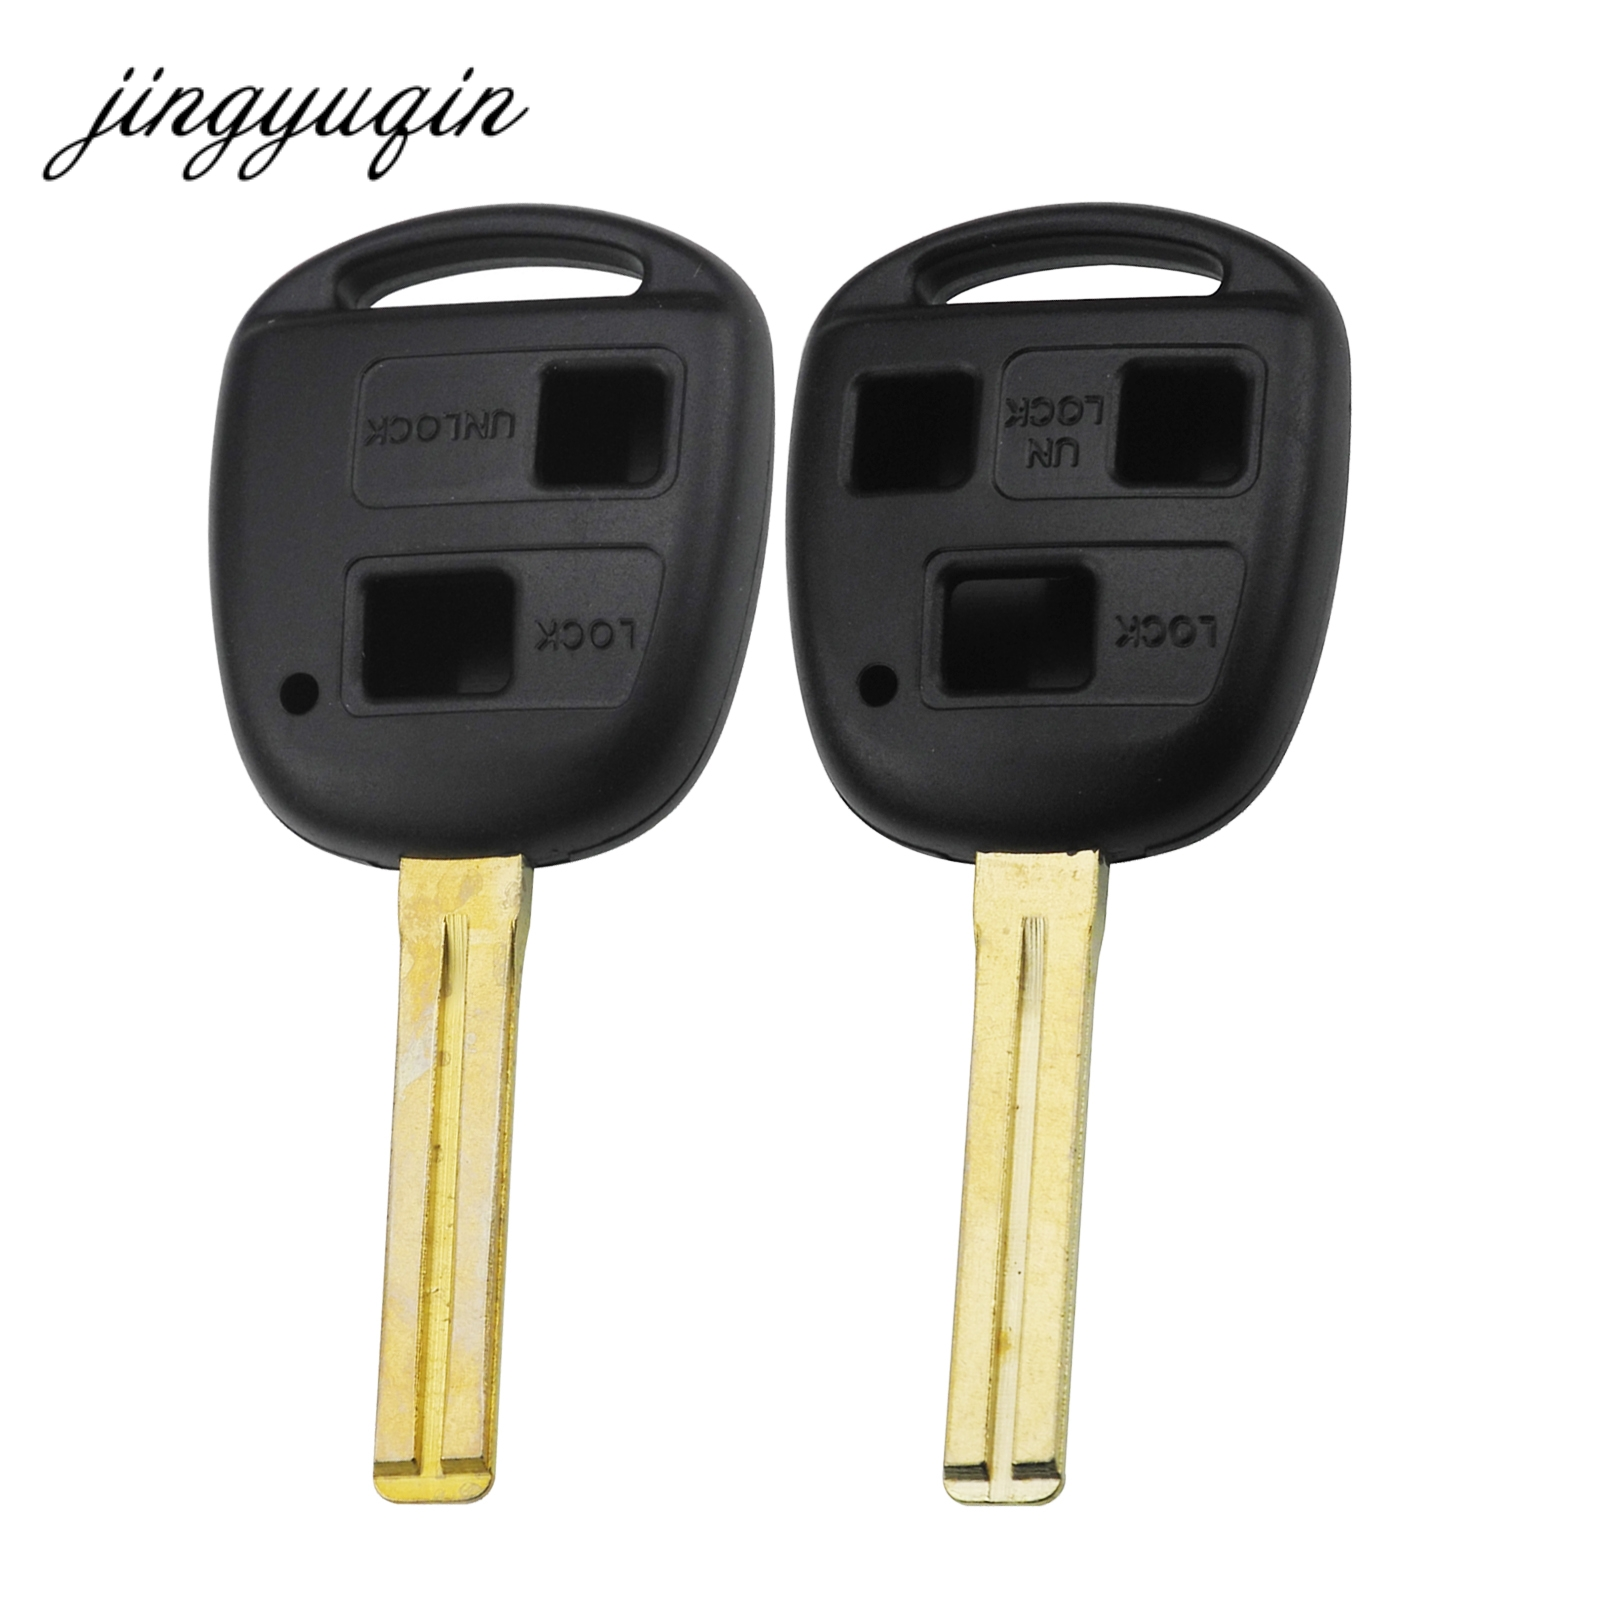 jingyuqin Remote Key Shell Replacement for Toyota Land Cruiser 2 Button Uncut Key Fob Case Blade TOY48 toy48